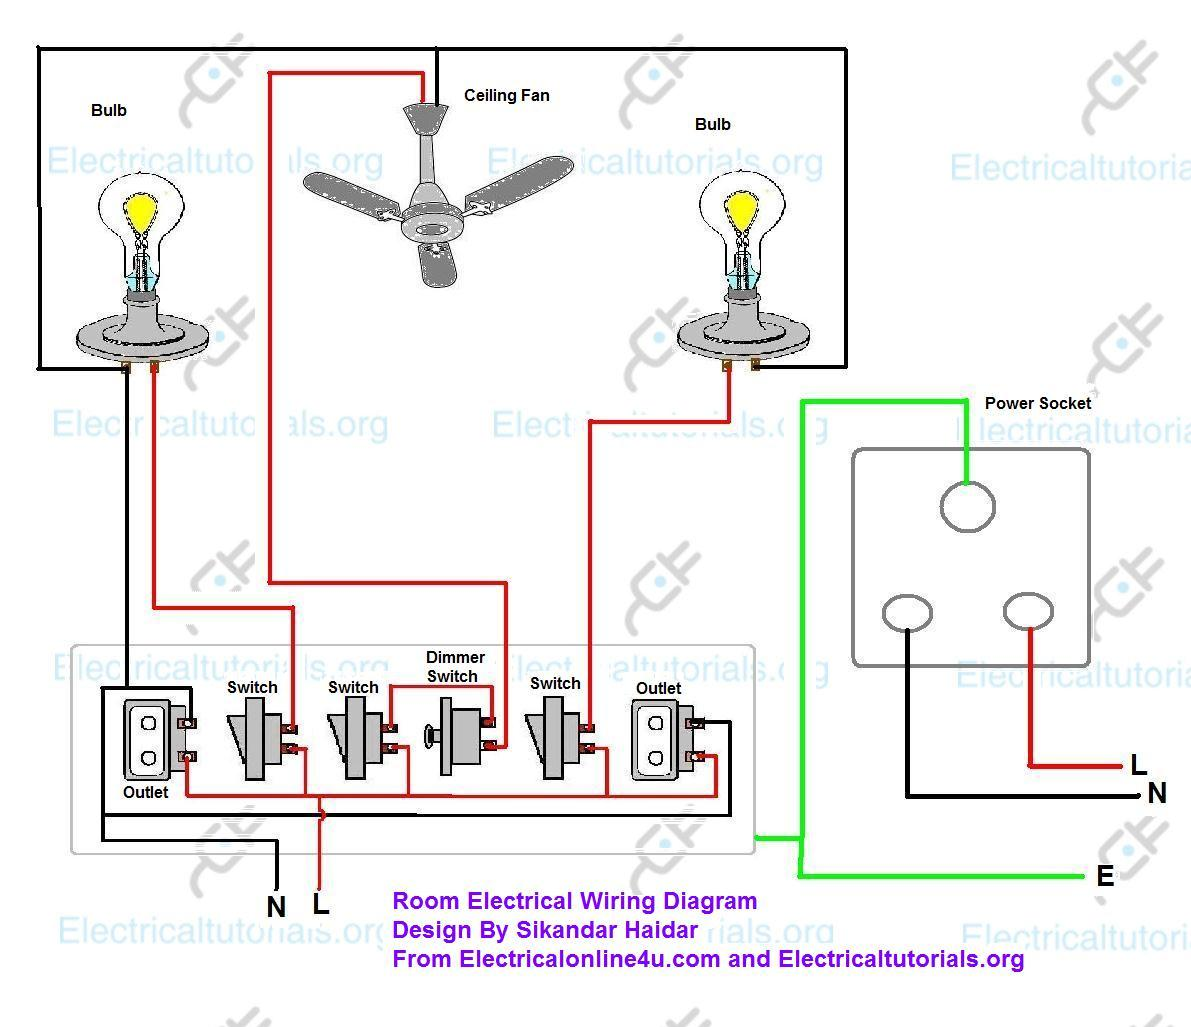 electrical wiring diagrams explained swm 30 diagram a room complete explanation in urdu hindi